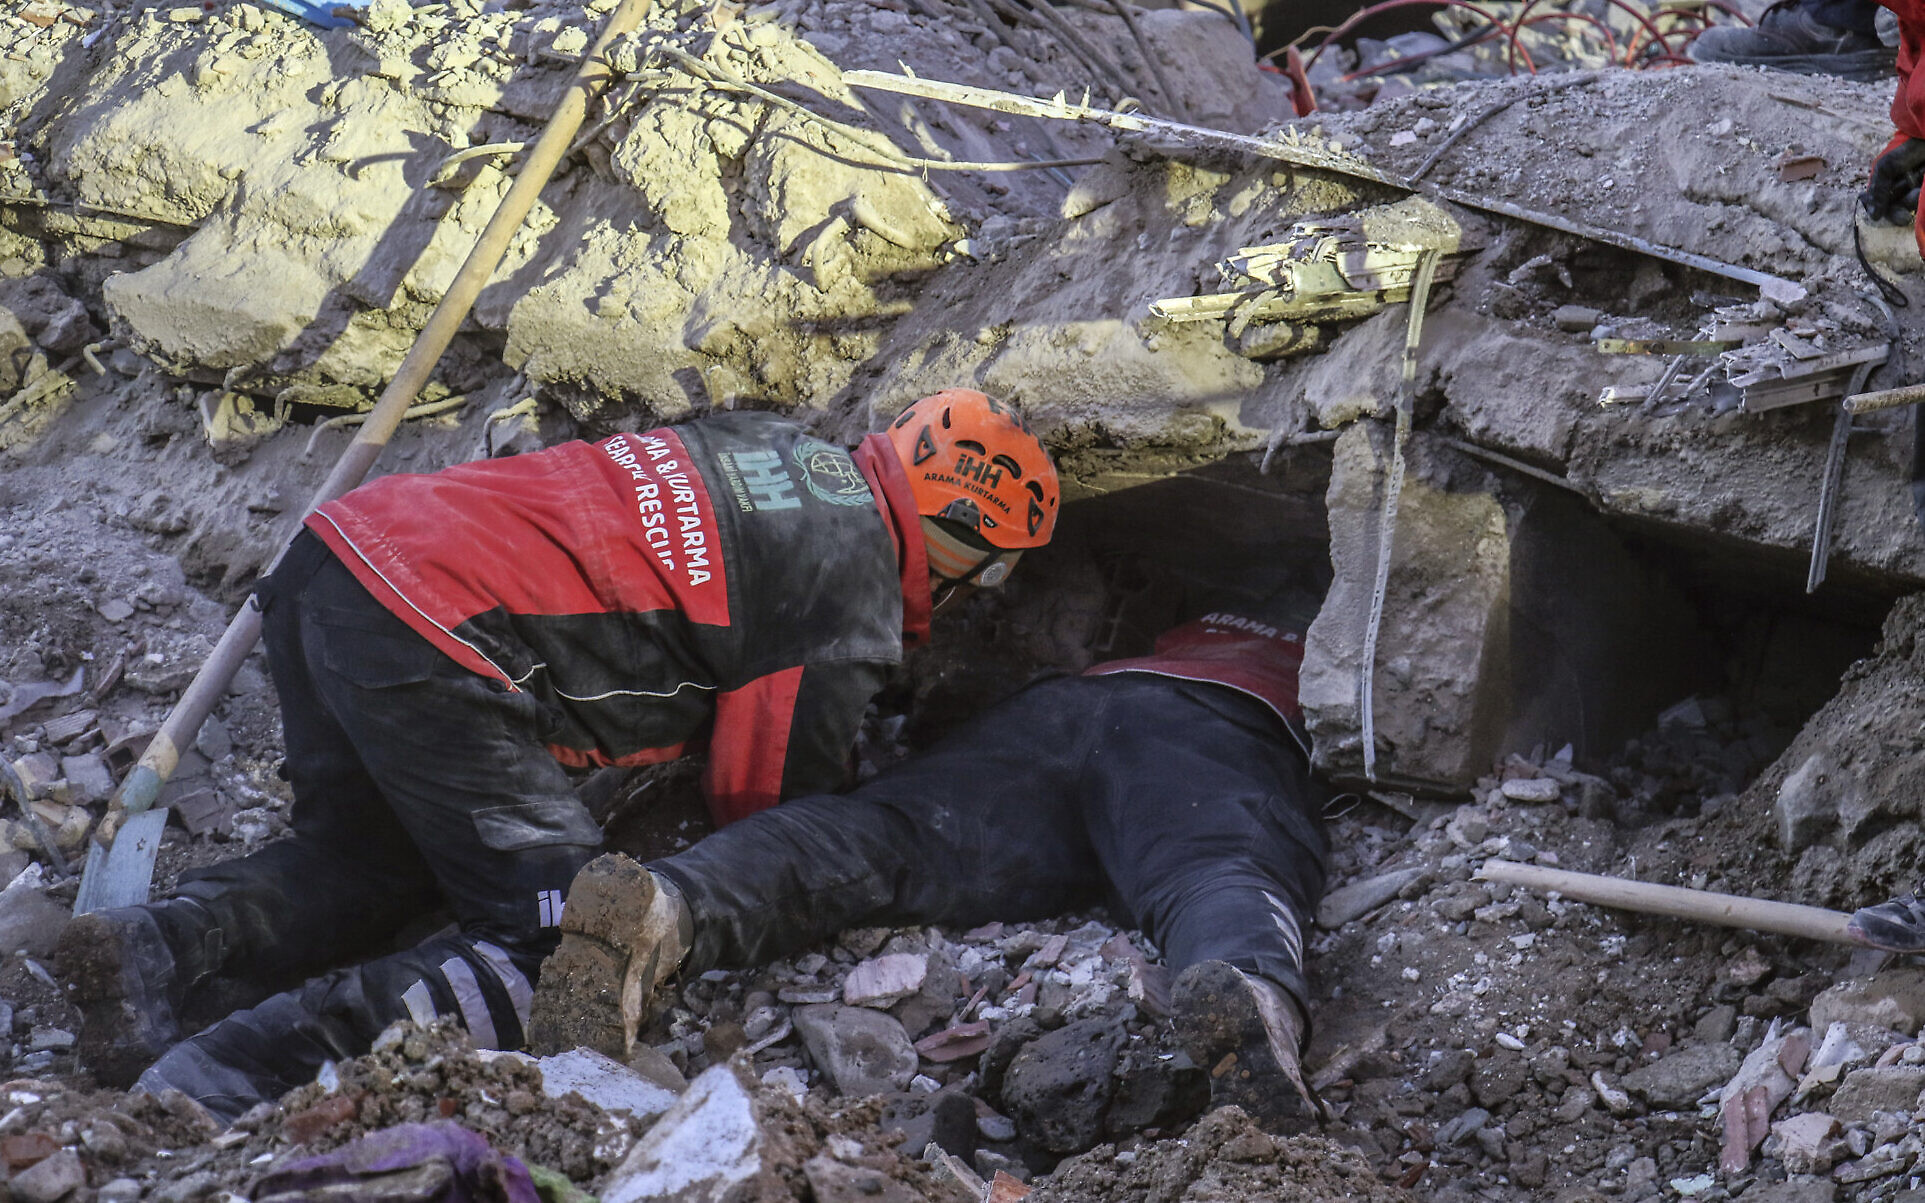 Workers search for victims after Turkish quake, death toll now at 38